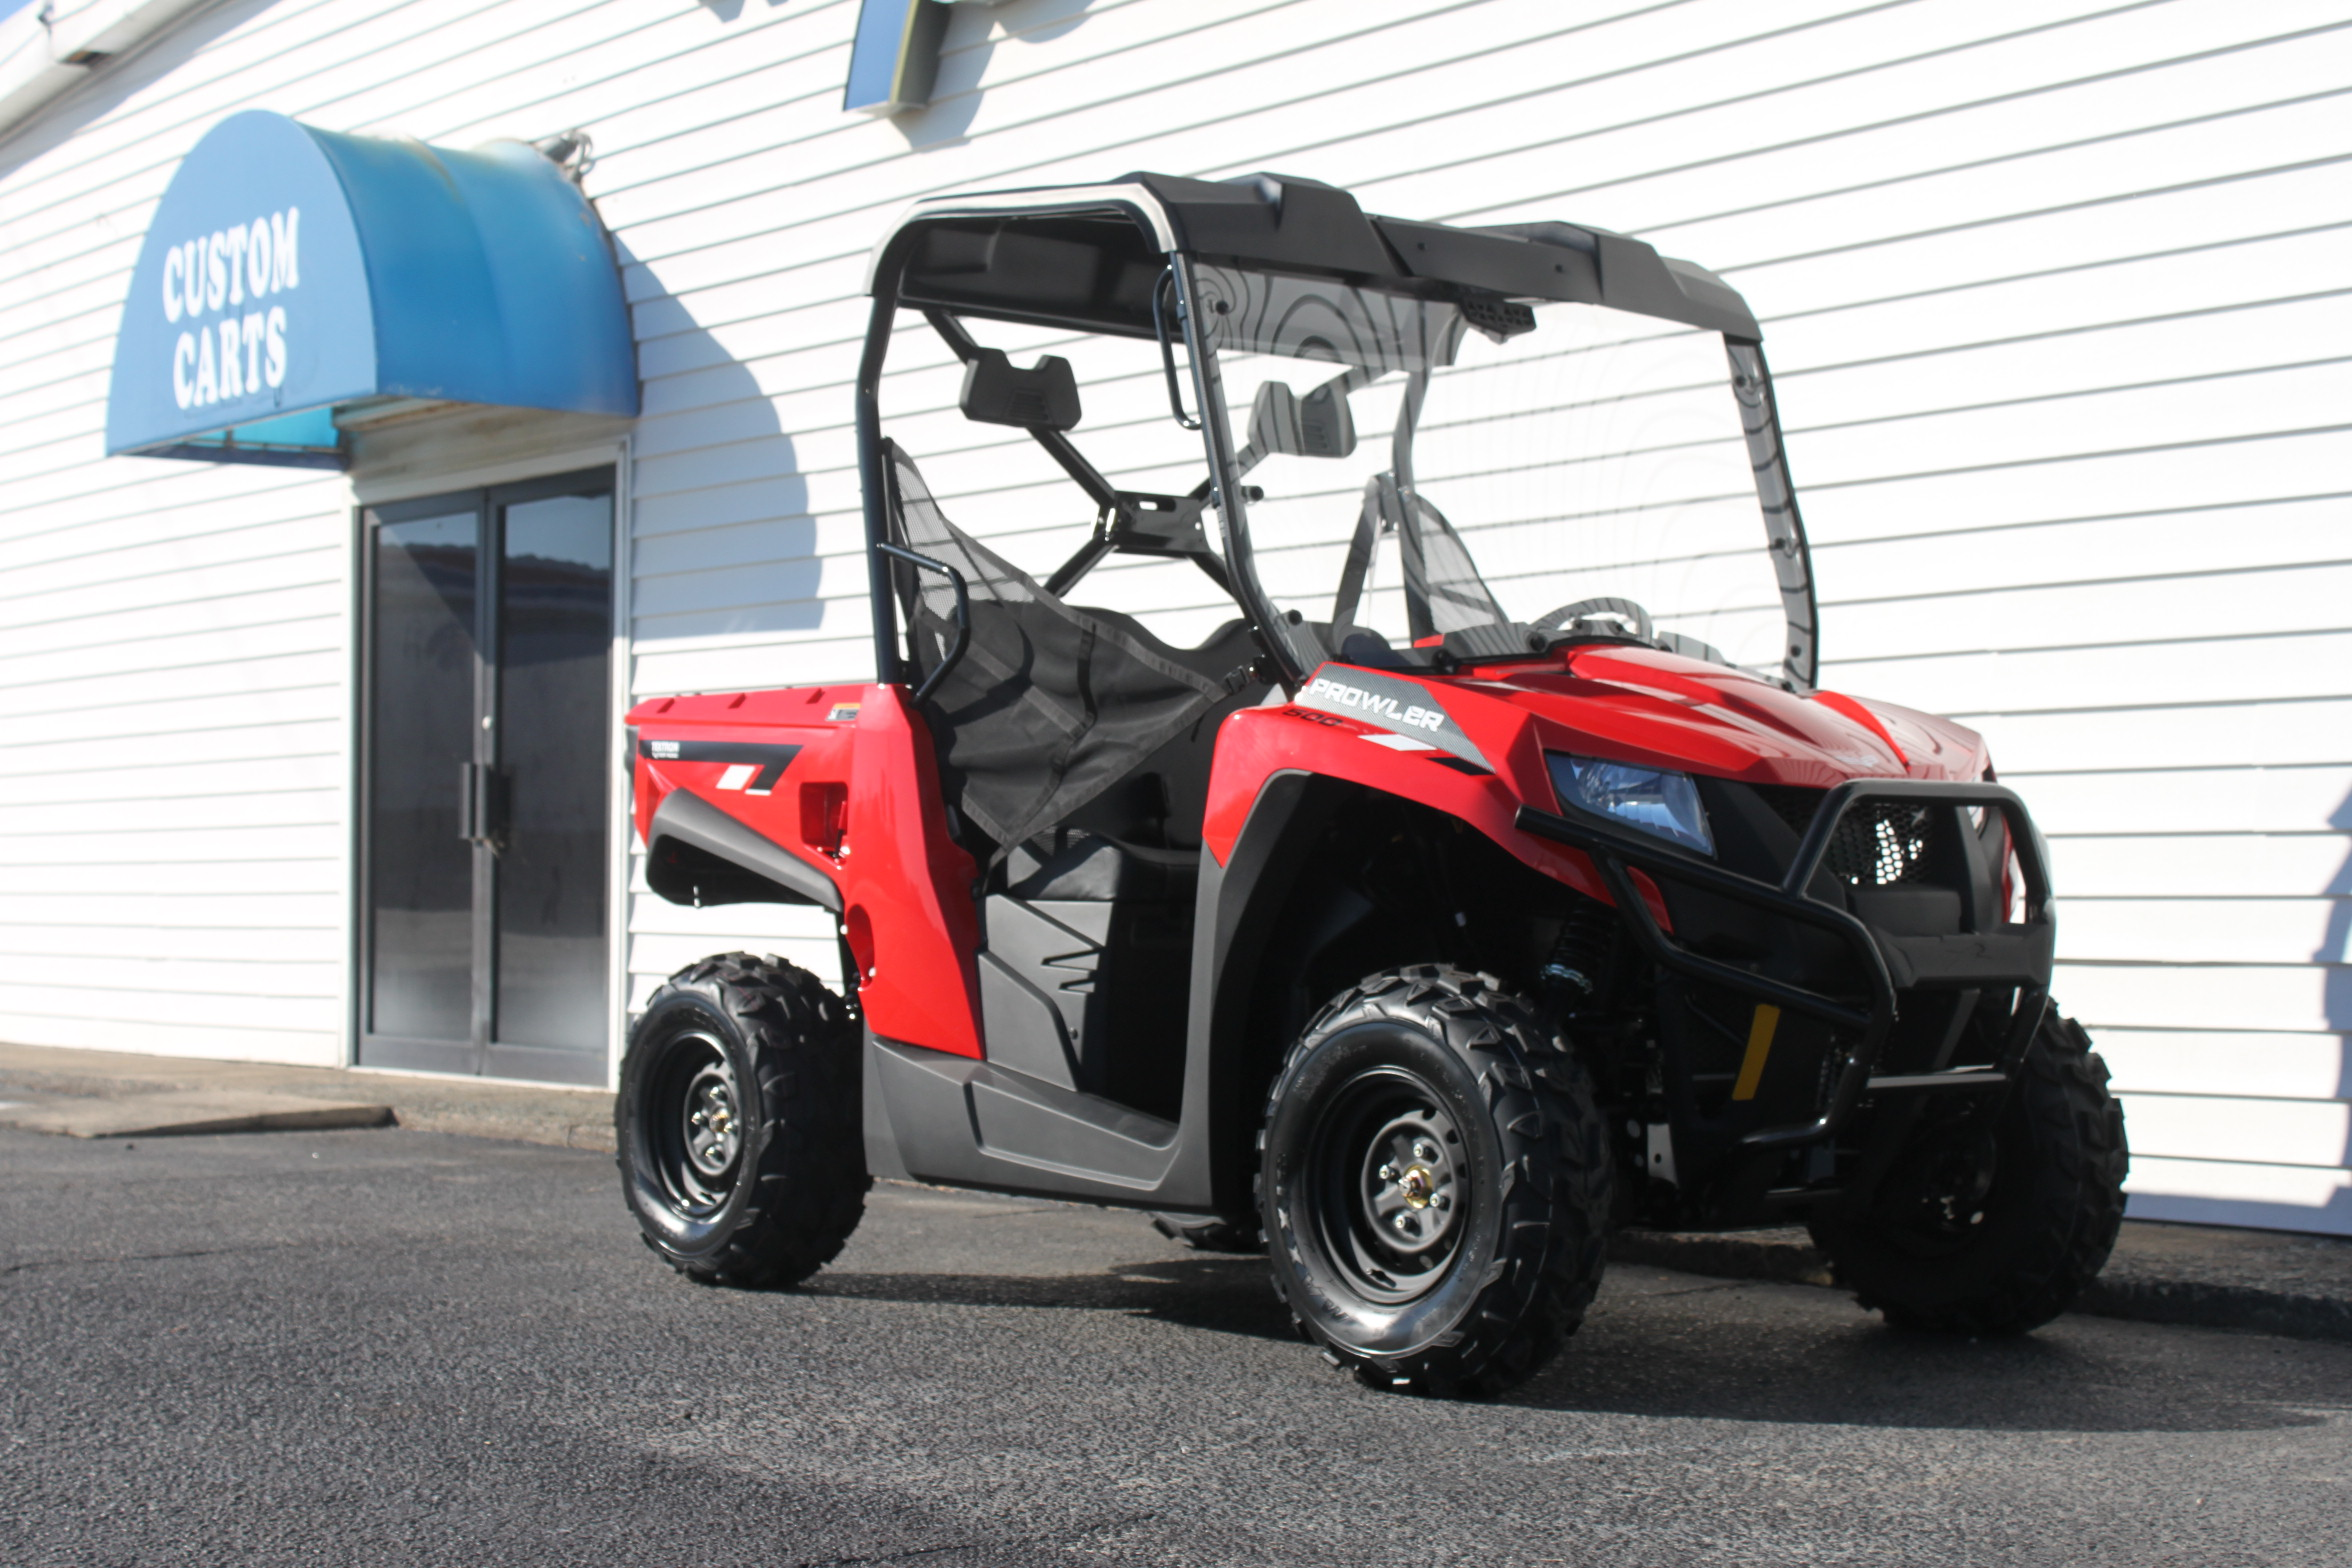 STOCK# JK6R0456, 2018 TEXTRON OFFROAD PROWLER 500 ATV